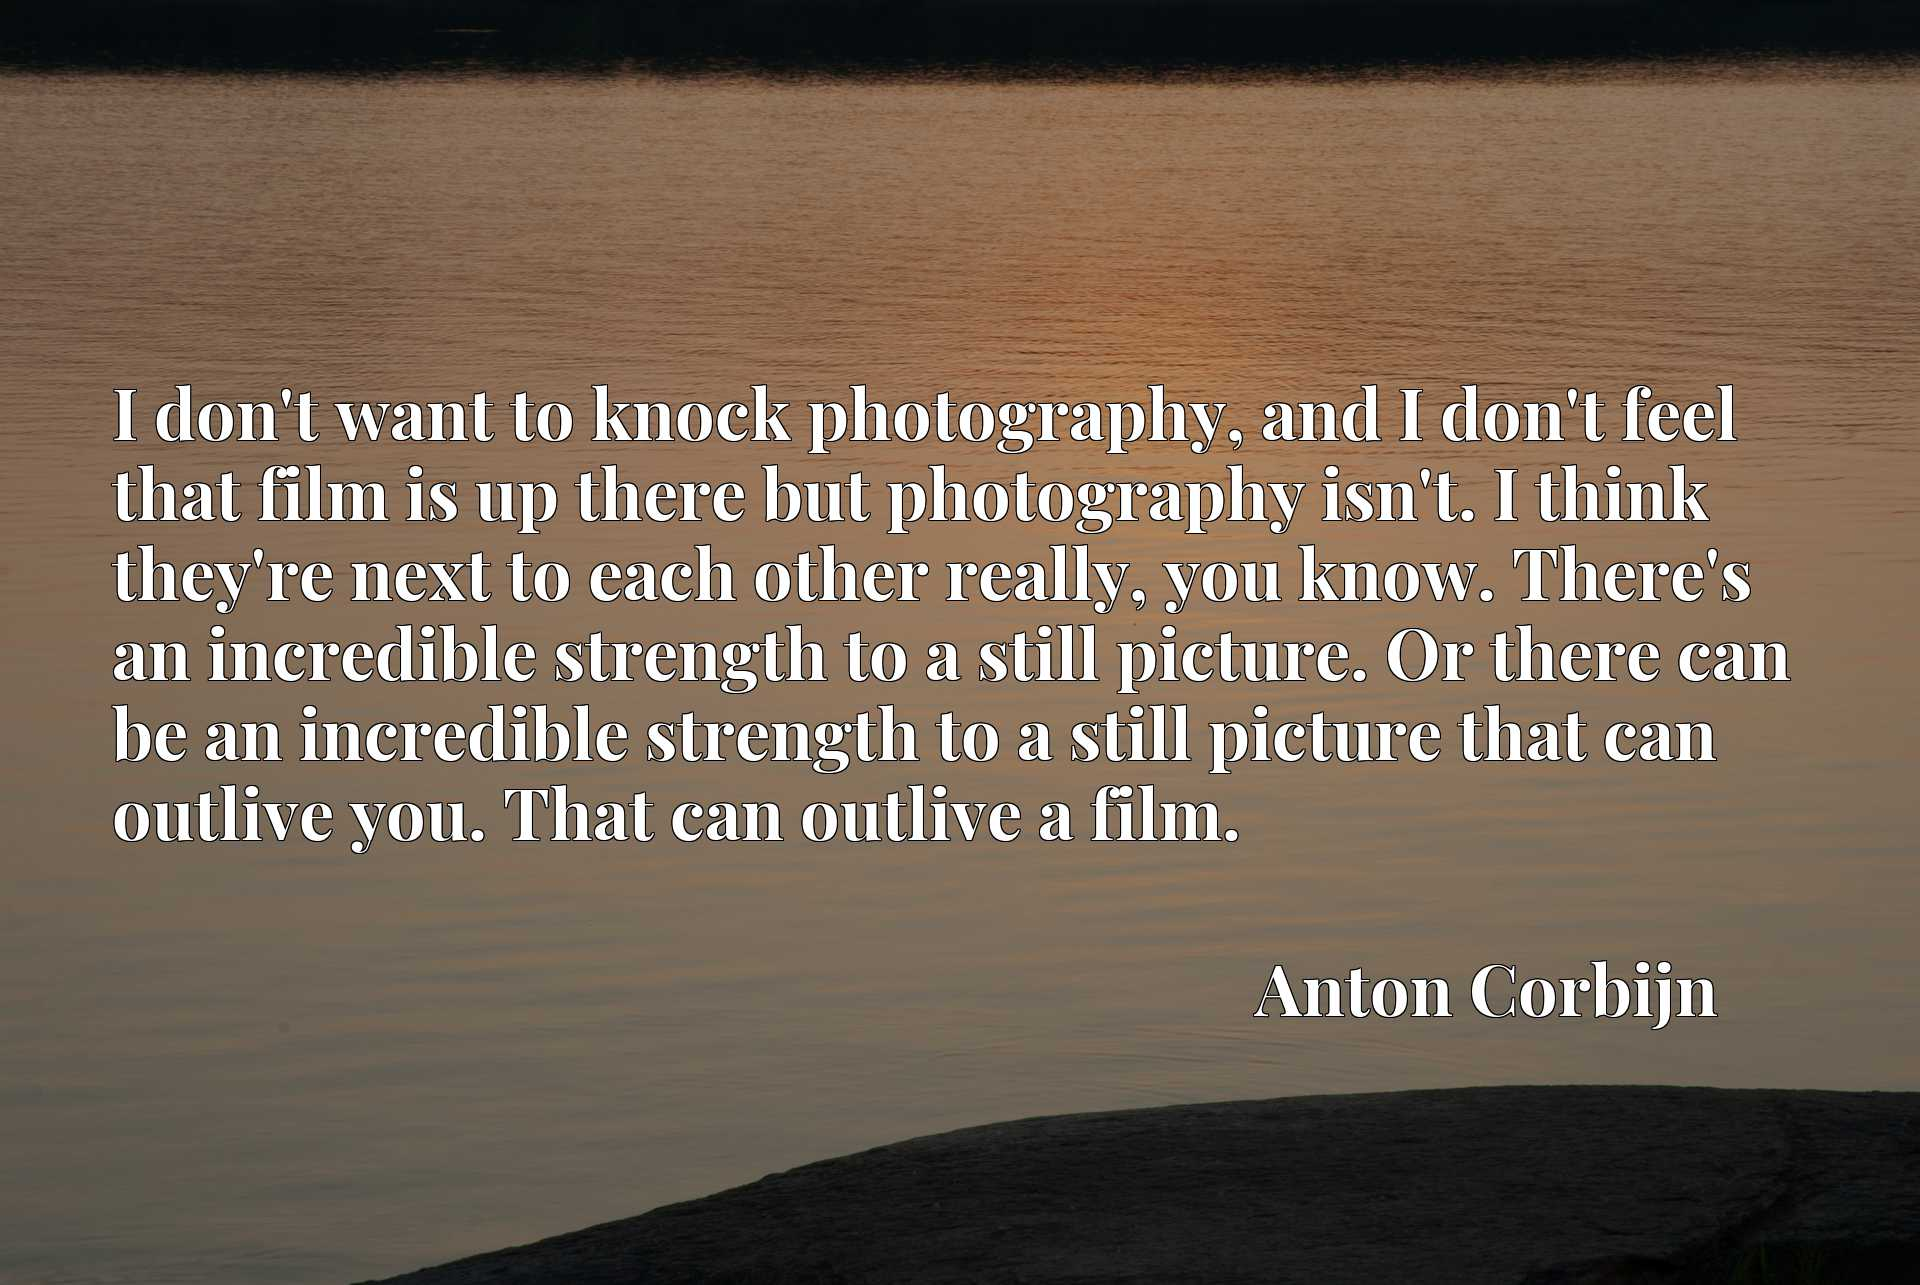 I don't want to knock photography, and I don't feel that film is up there but photography isn't. I think they're next to each other really, you know. There's an incredible strength to a still picture. Or there can be an incredible strength to a still picture that can outlive you. That can outlive a film.